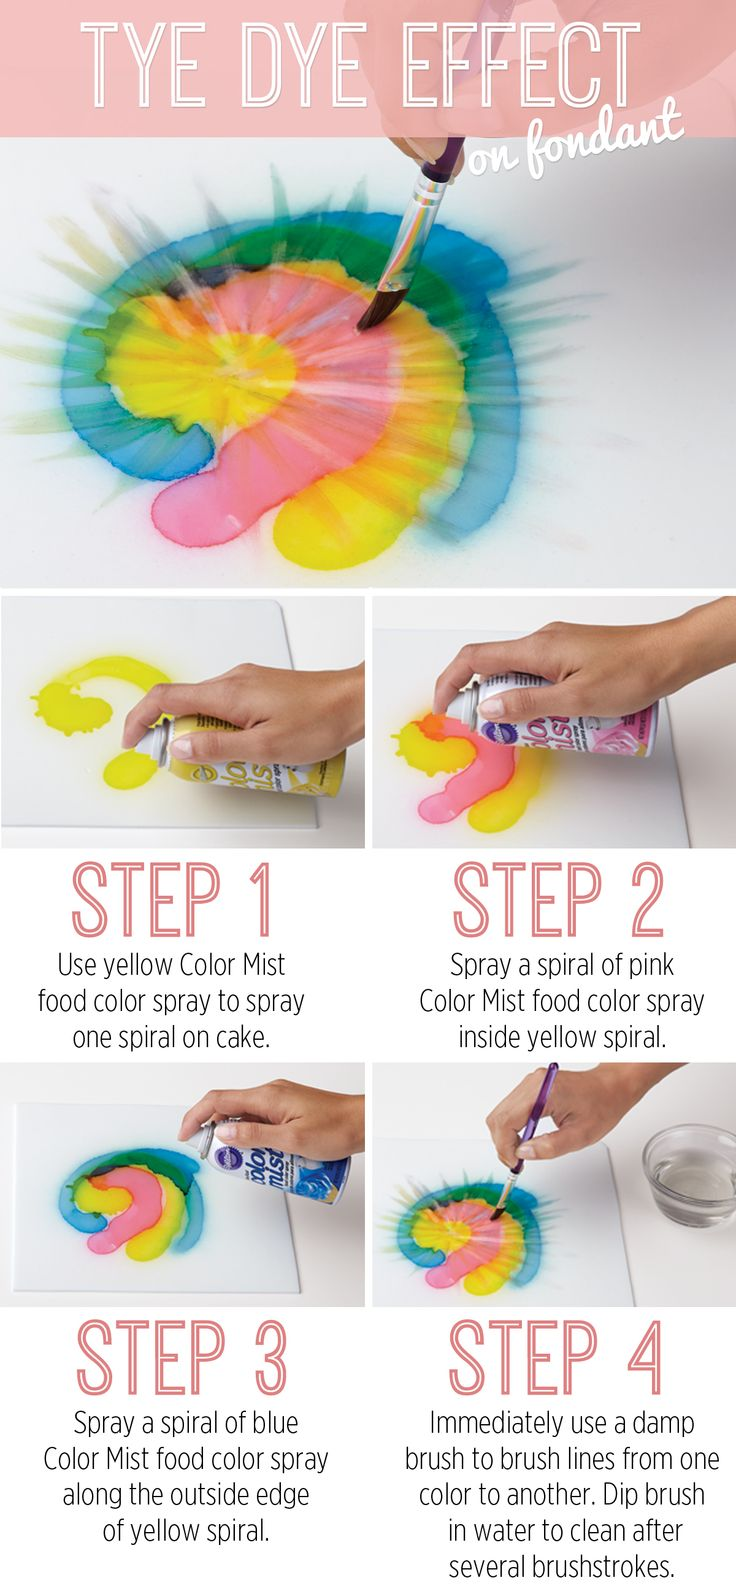 Use this easy technique to take your cakes and treats back to the 60's! Create the tye-dye effect with any three colors of Wilton Color Mist food color spray!